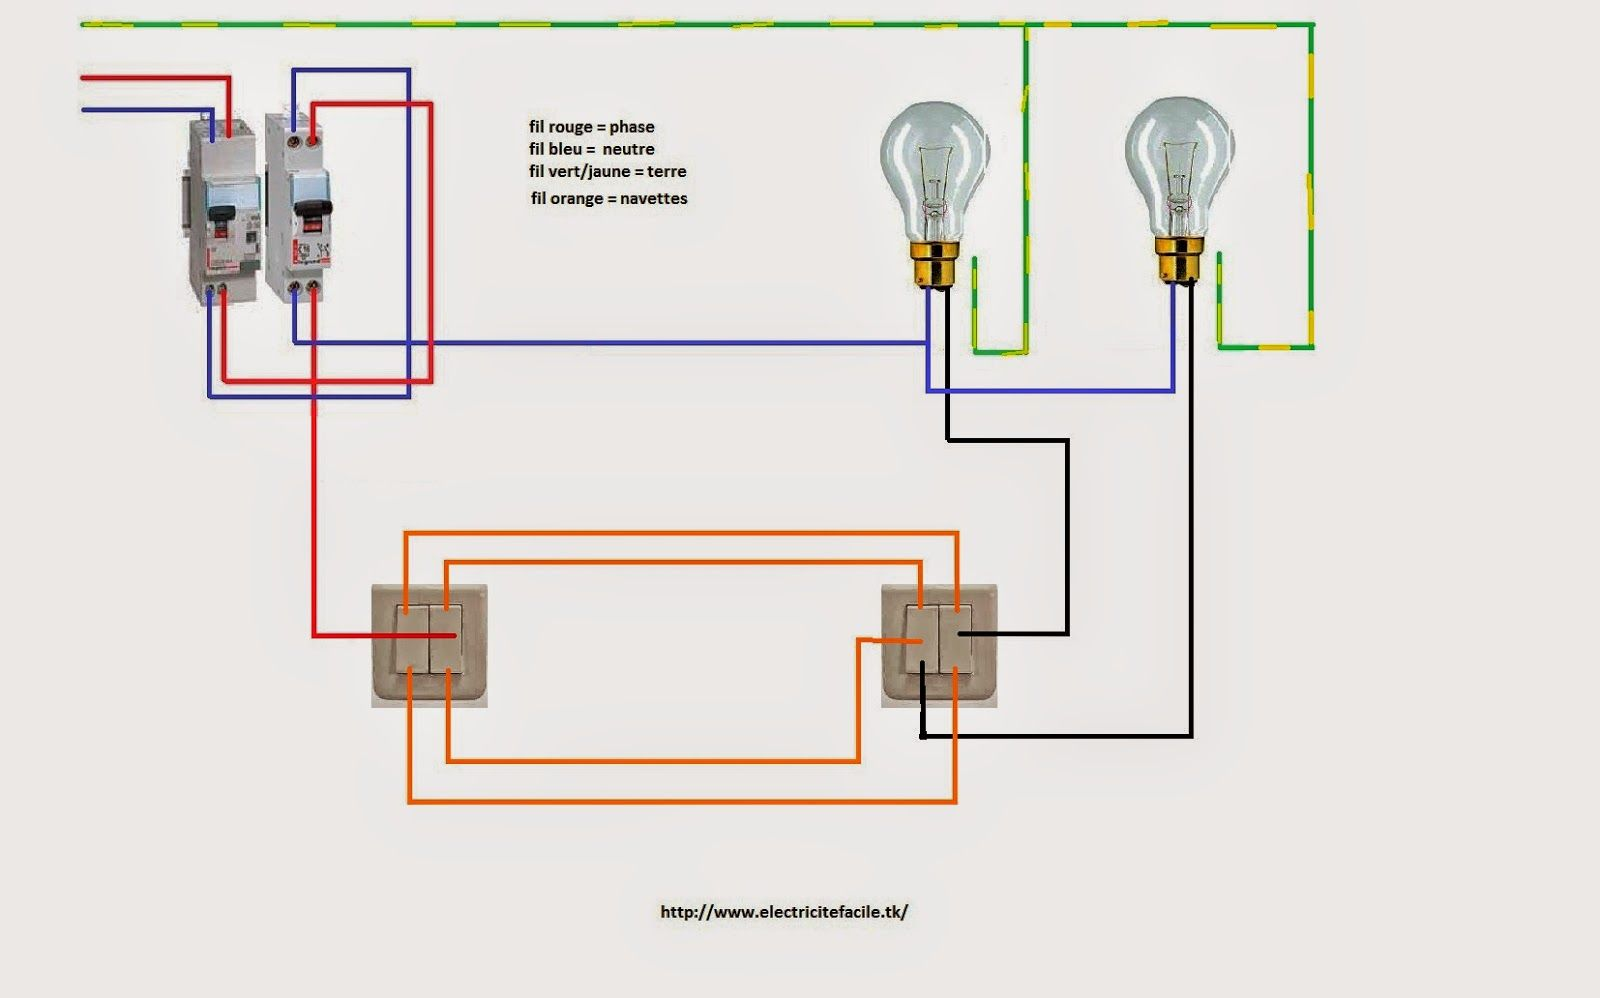 Doubl Va Et Vien Jpg 1600 998 Electrical Wiring Electrical Engineering Electricity